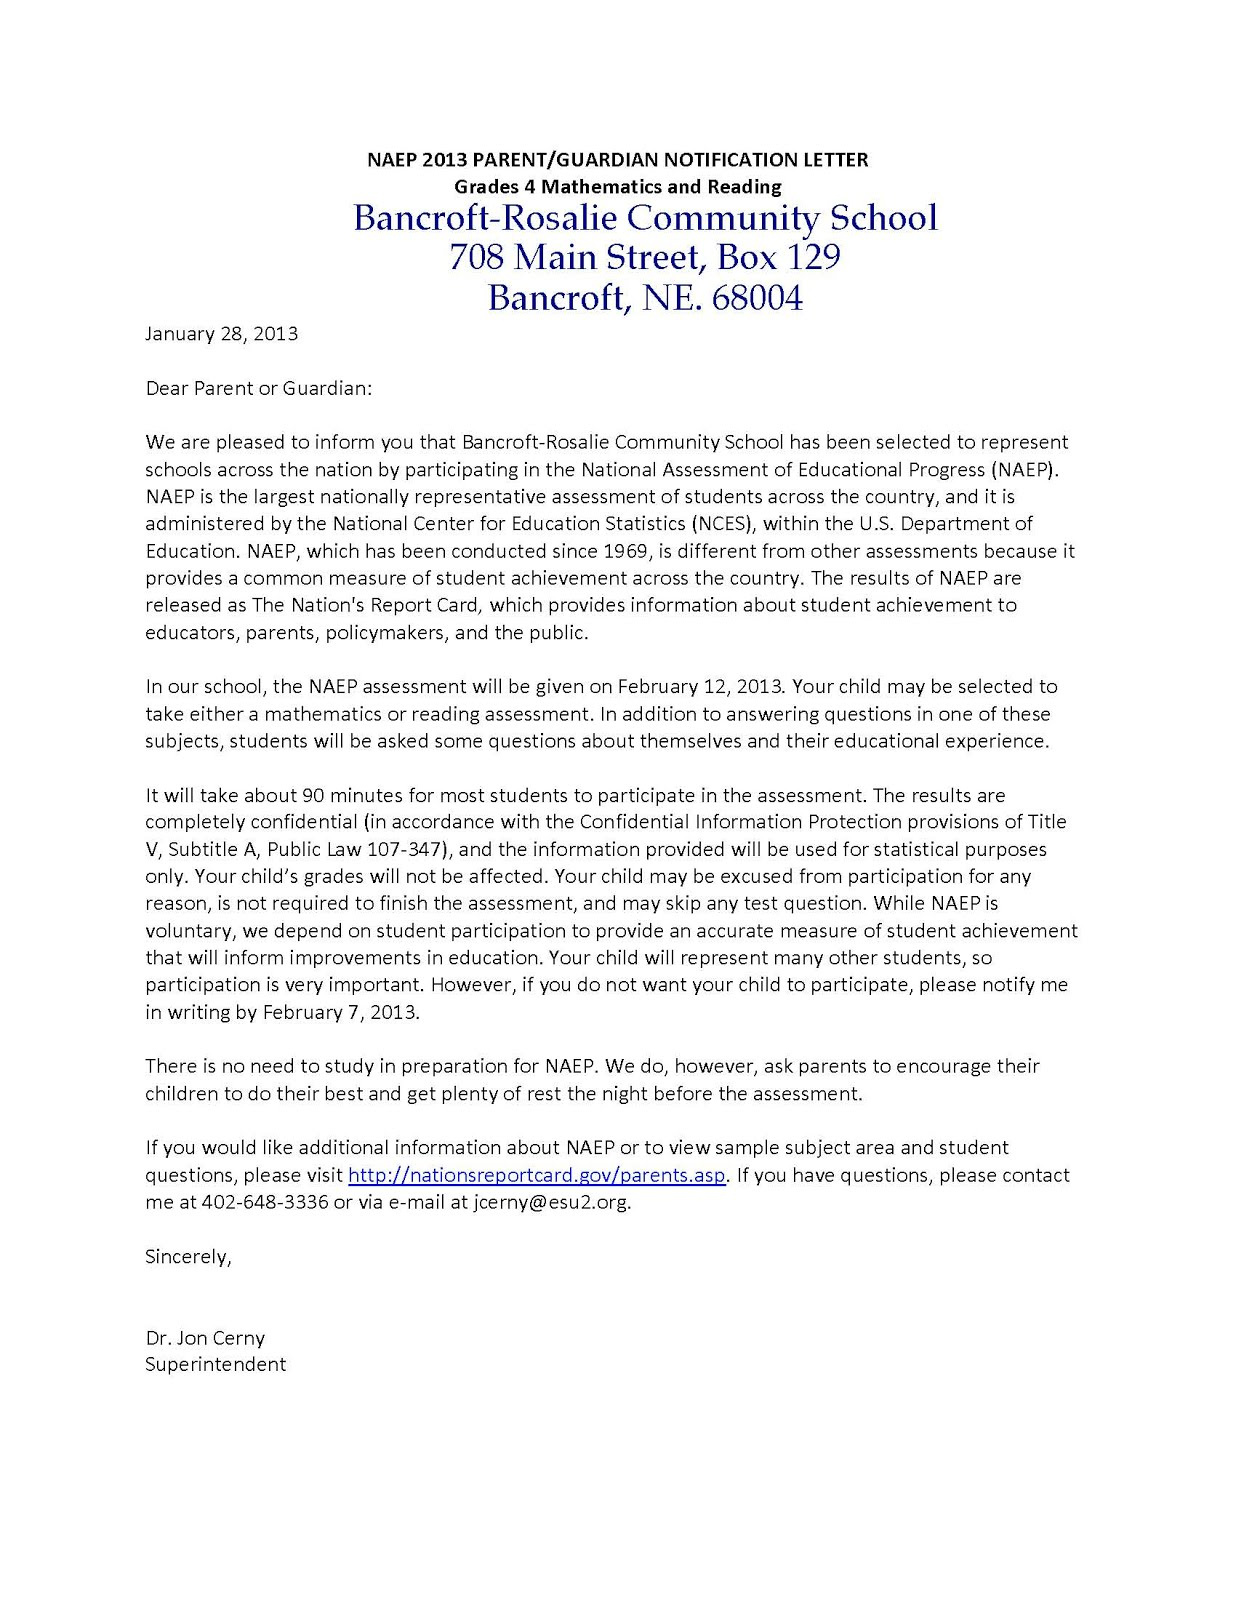 73 Free Grade Notification Letter To Parents Docx Download